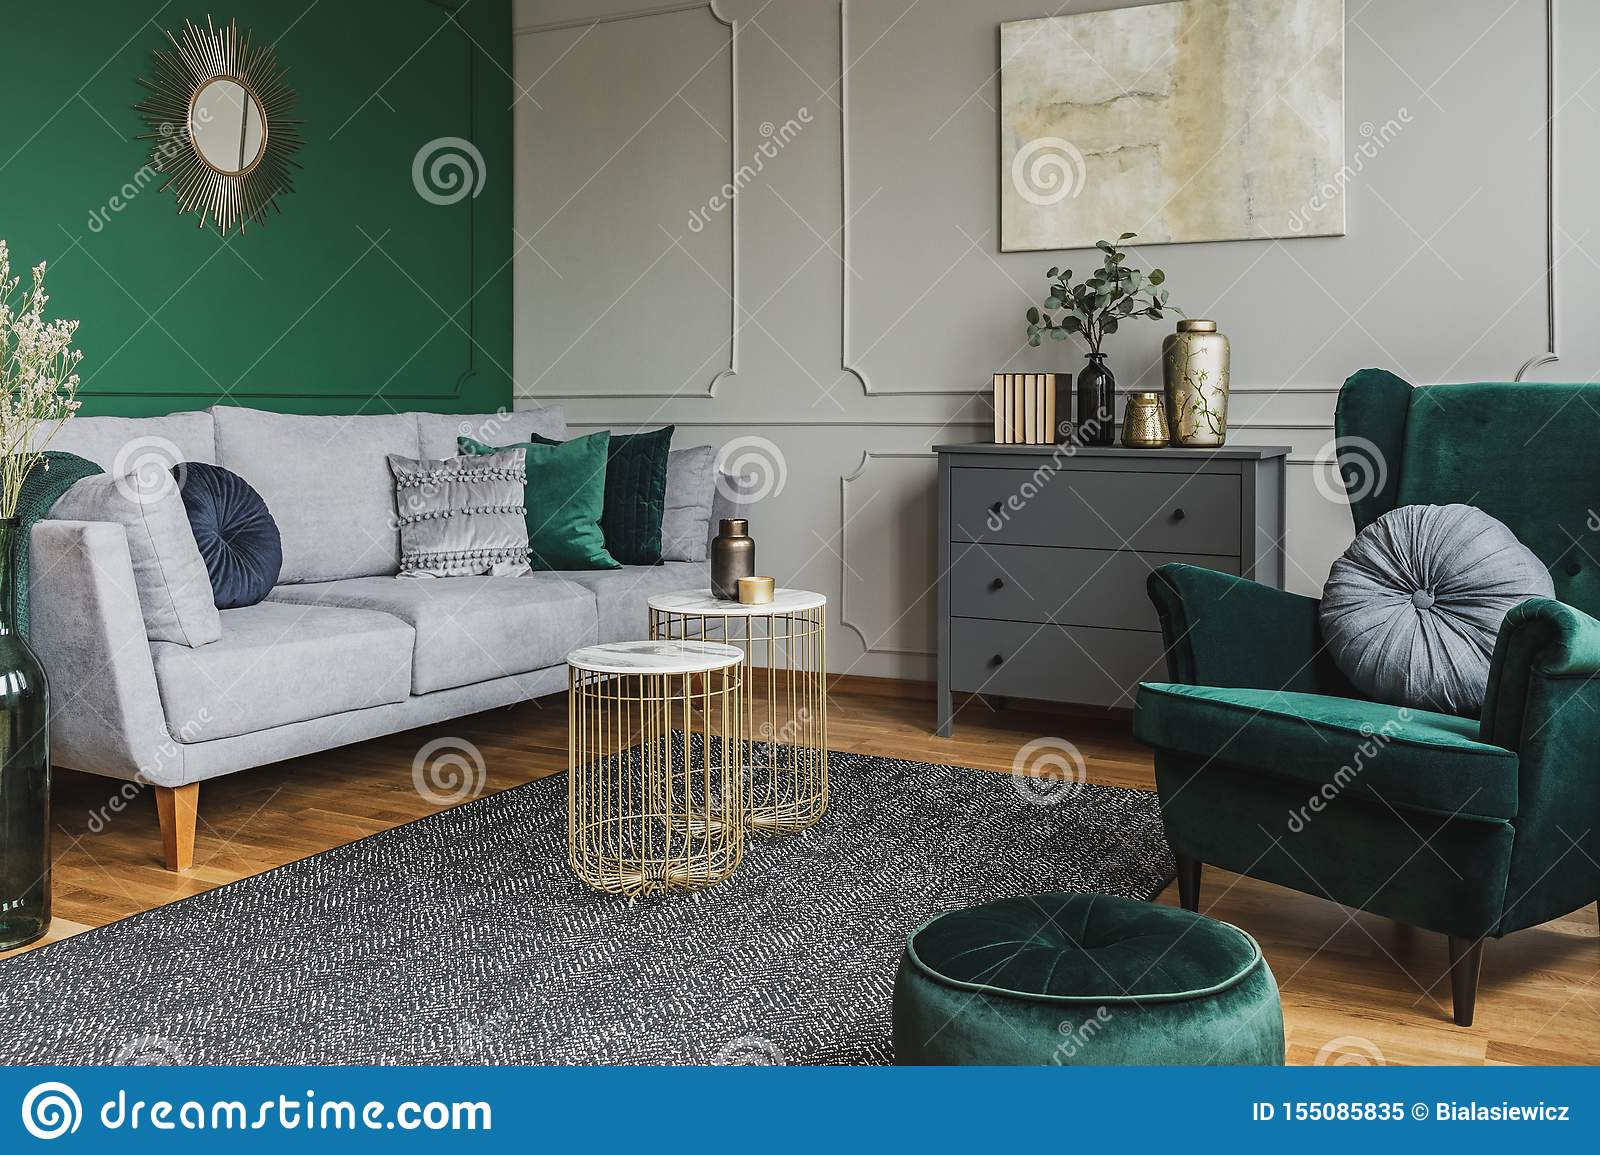 Stylish Emerald Green And Grey Living Room Interior Design With Abstract Painting On The Wall Stock Image Image Of Chair Home 155085835